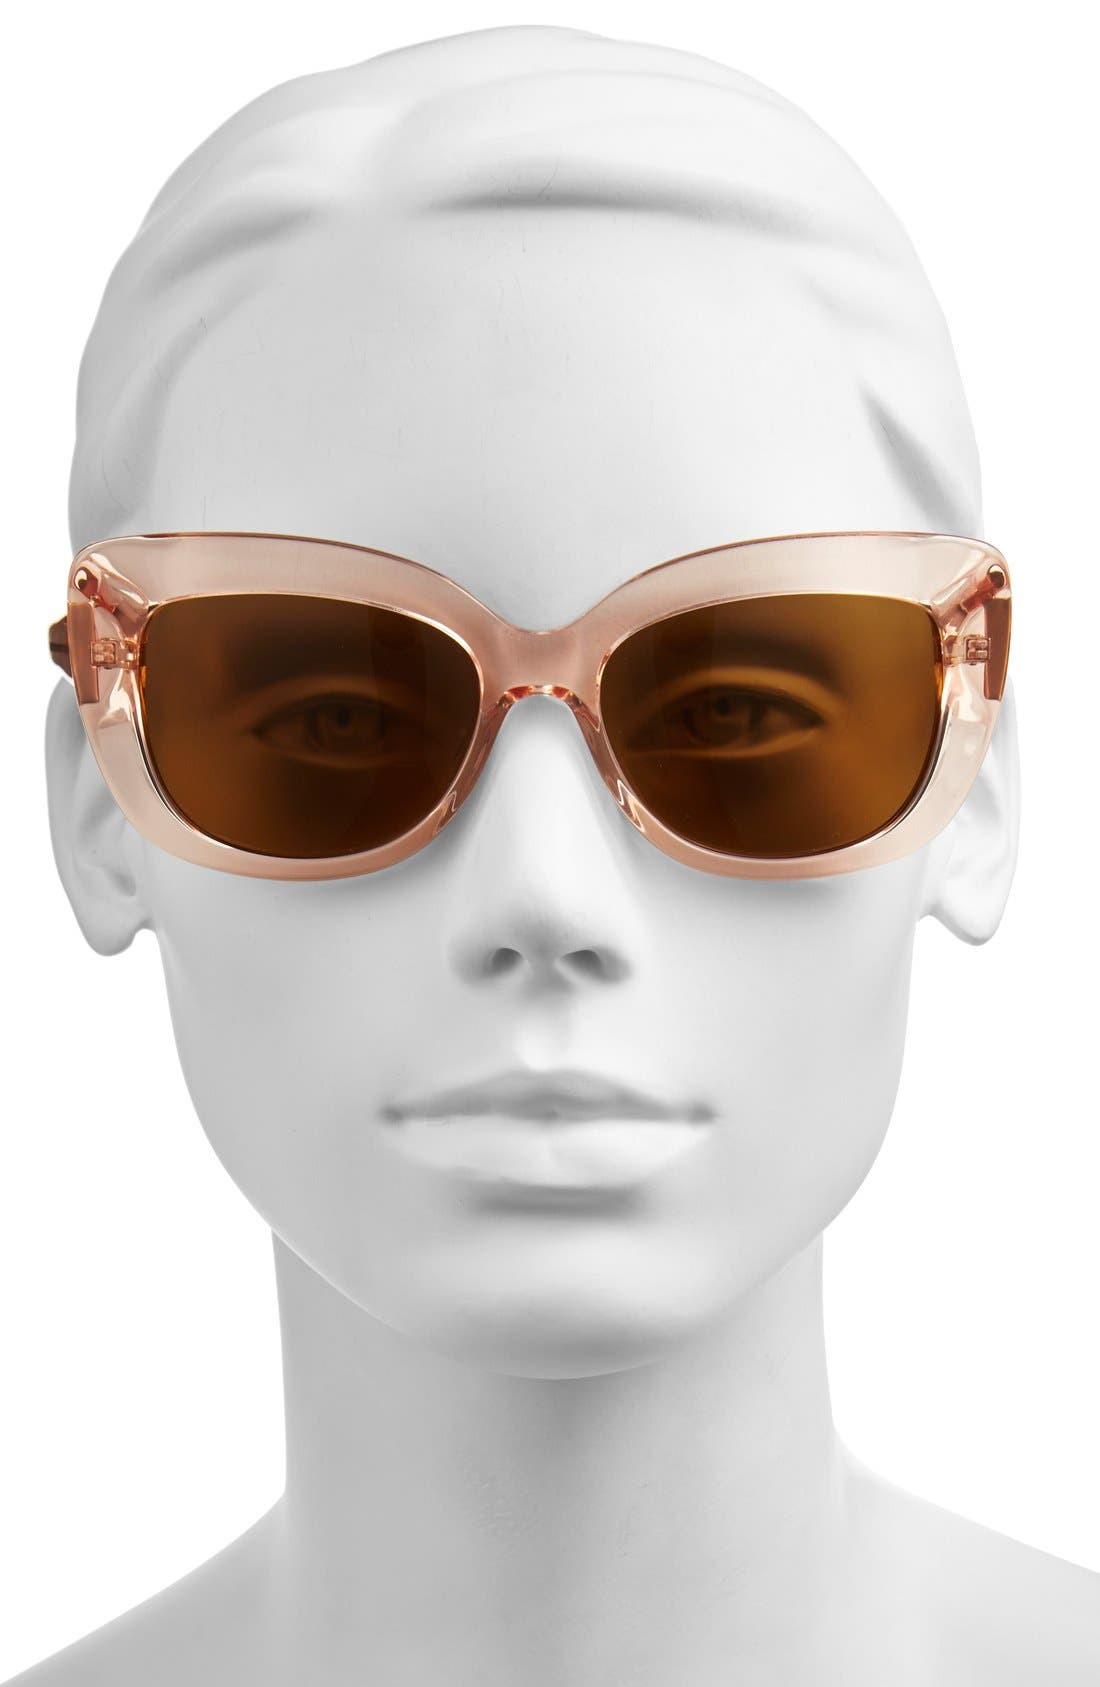 Alternate Image 2  - kate spade new york 'ursula' 55mm polarized cat eye sunglasses (Nordstrom Exclusive)